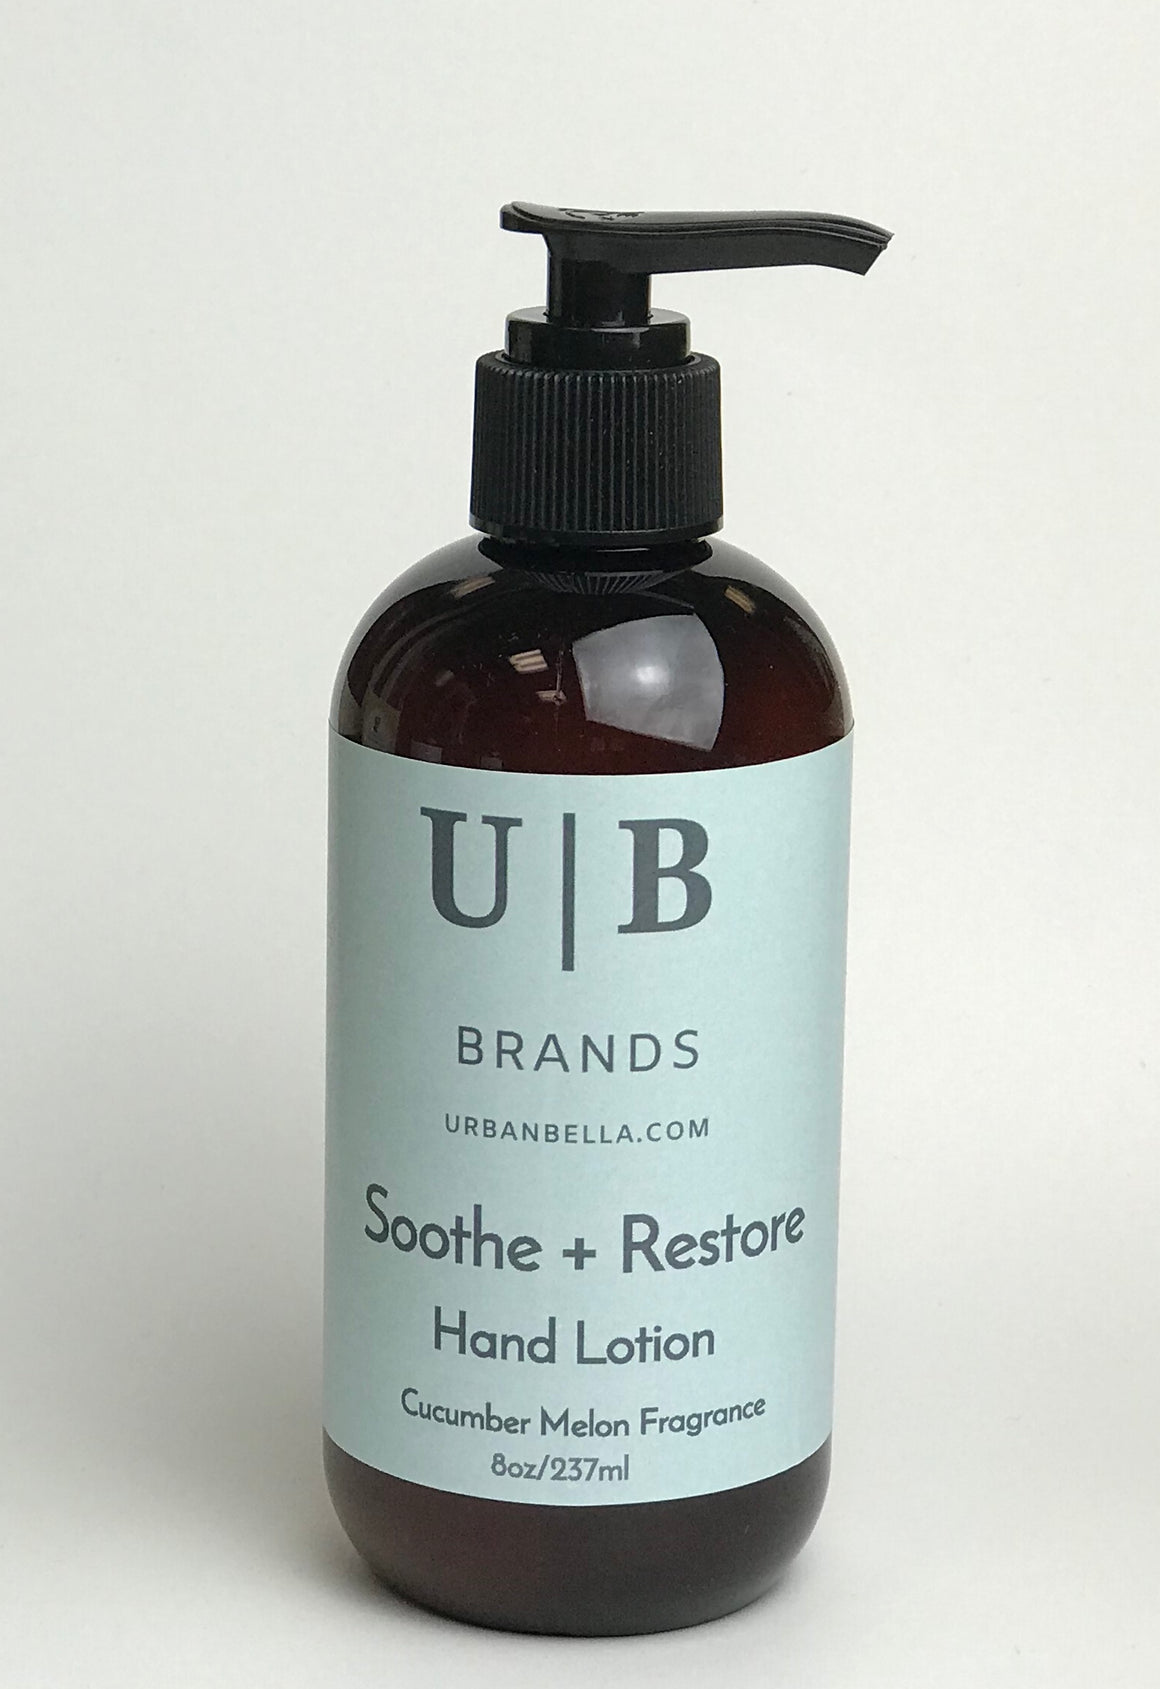 U|B Soothe + Restore Hand Lotion